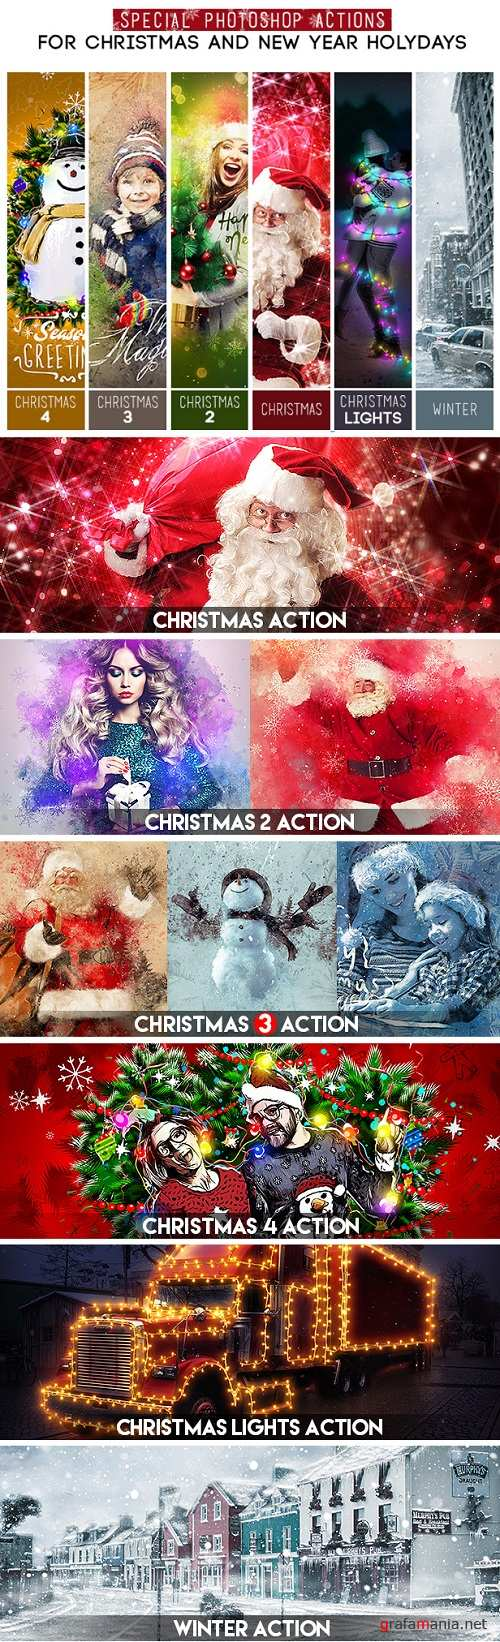 Special Photoshop Actions Bundle - For Christmas and New Year Holydays